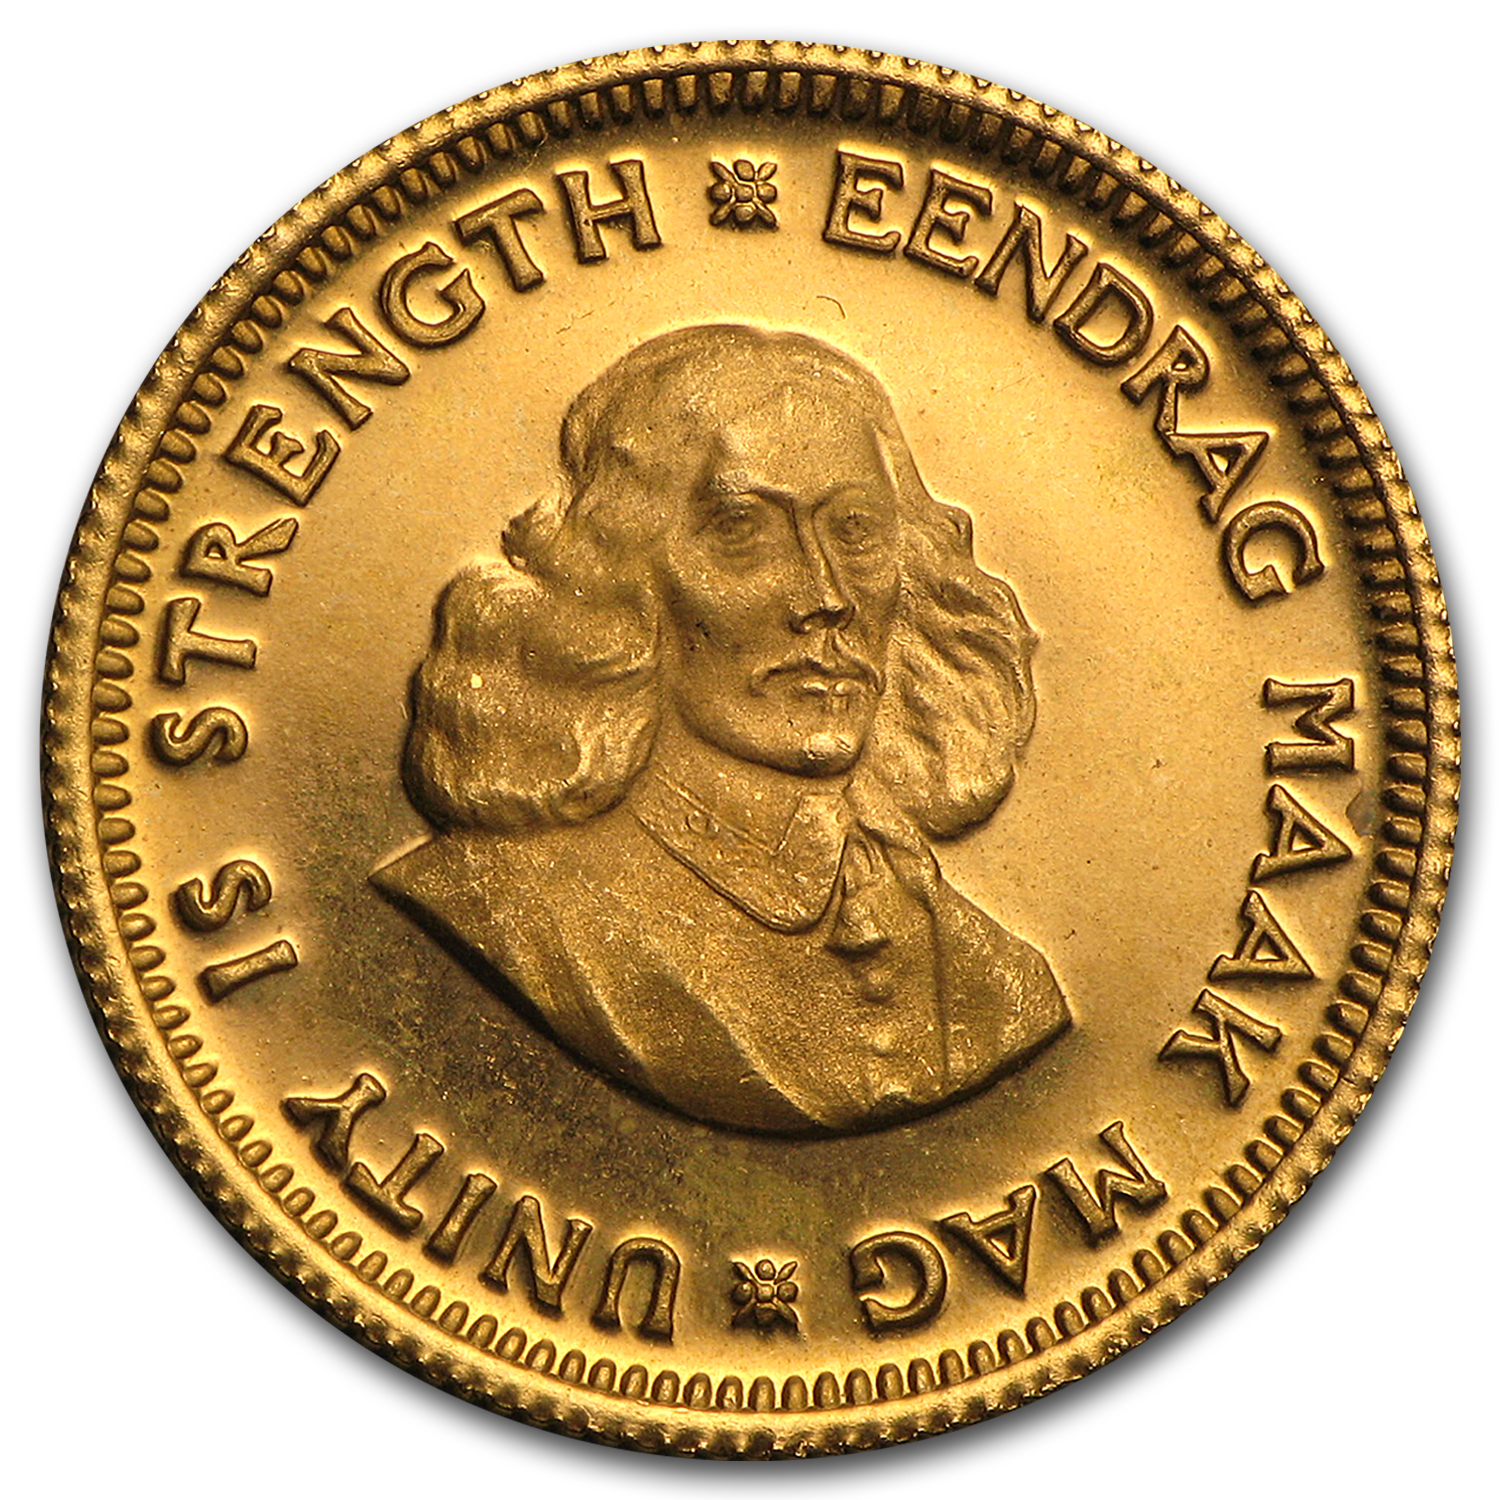 South Africa Gold 1 Rand BU